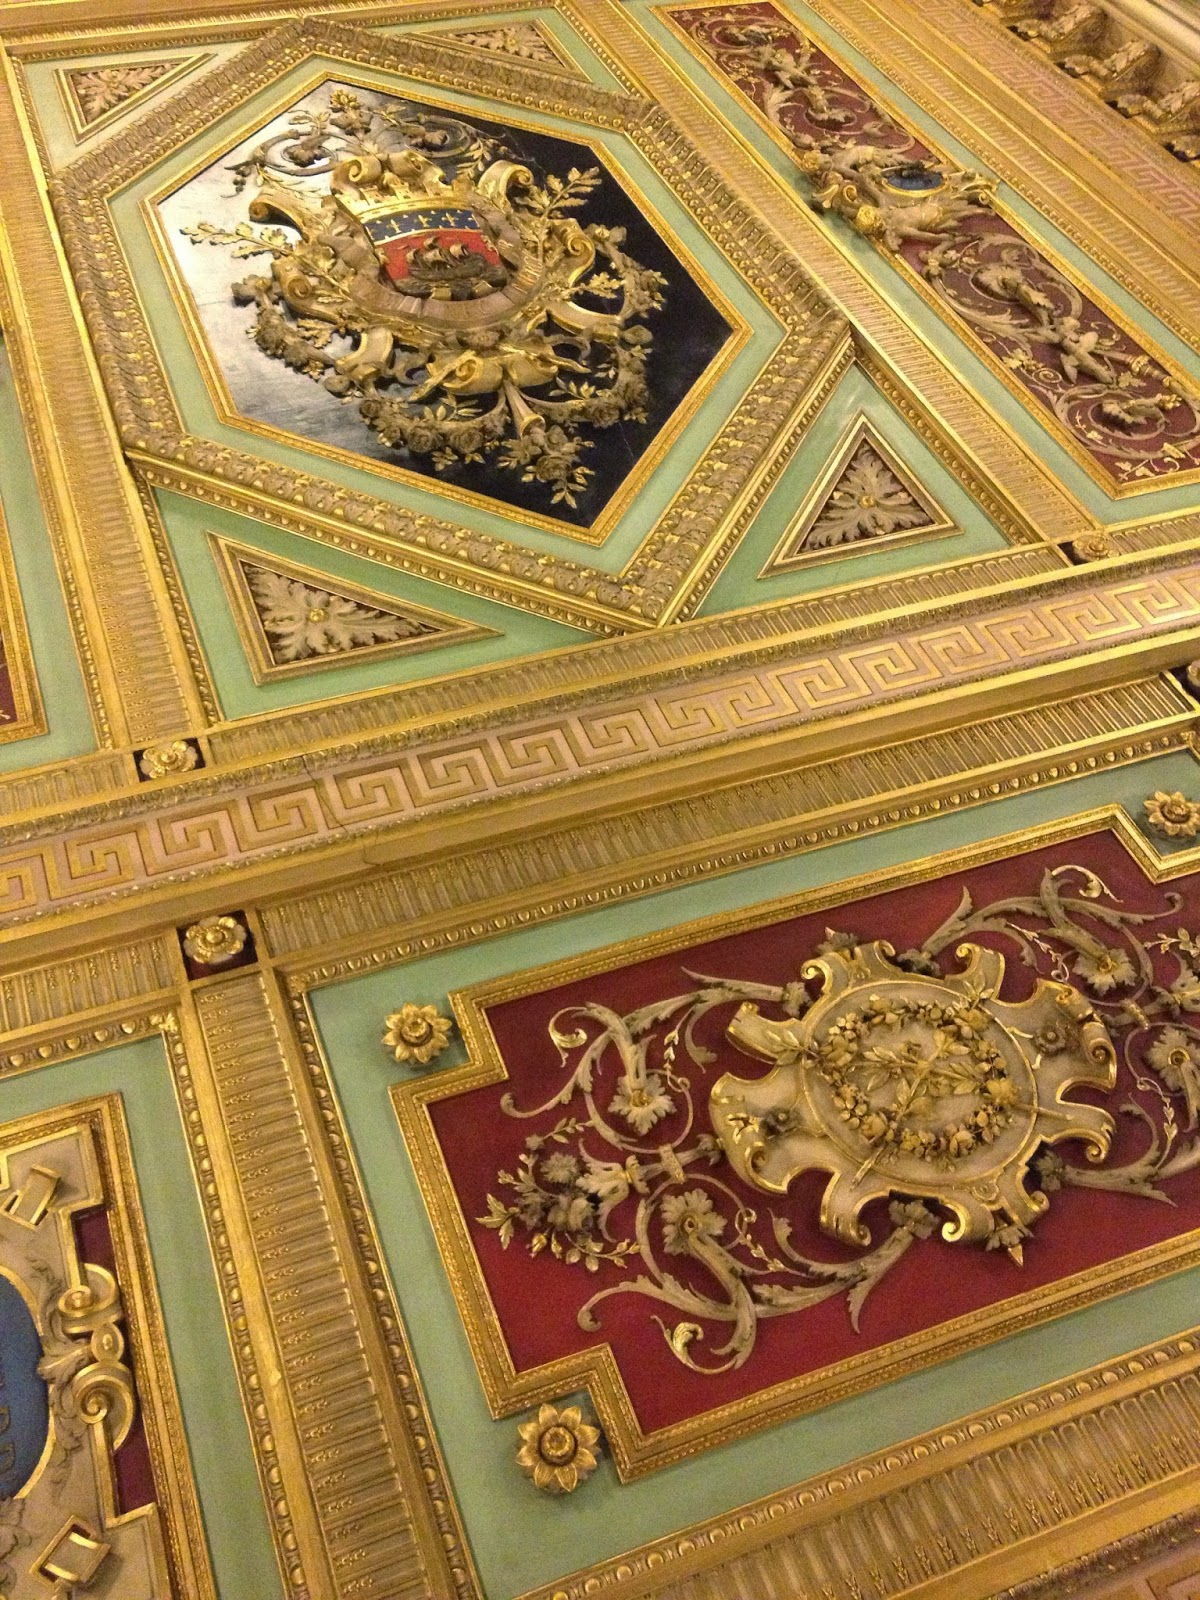 Exquisite ceiling at the Mairie du 7e, Paris